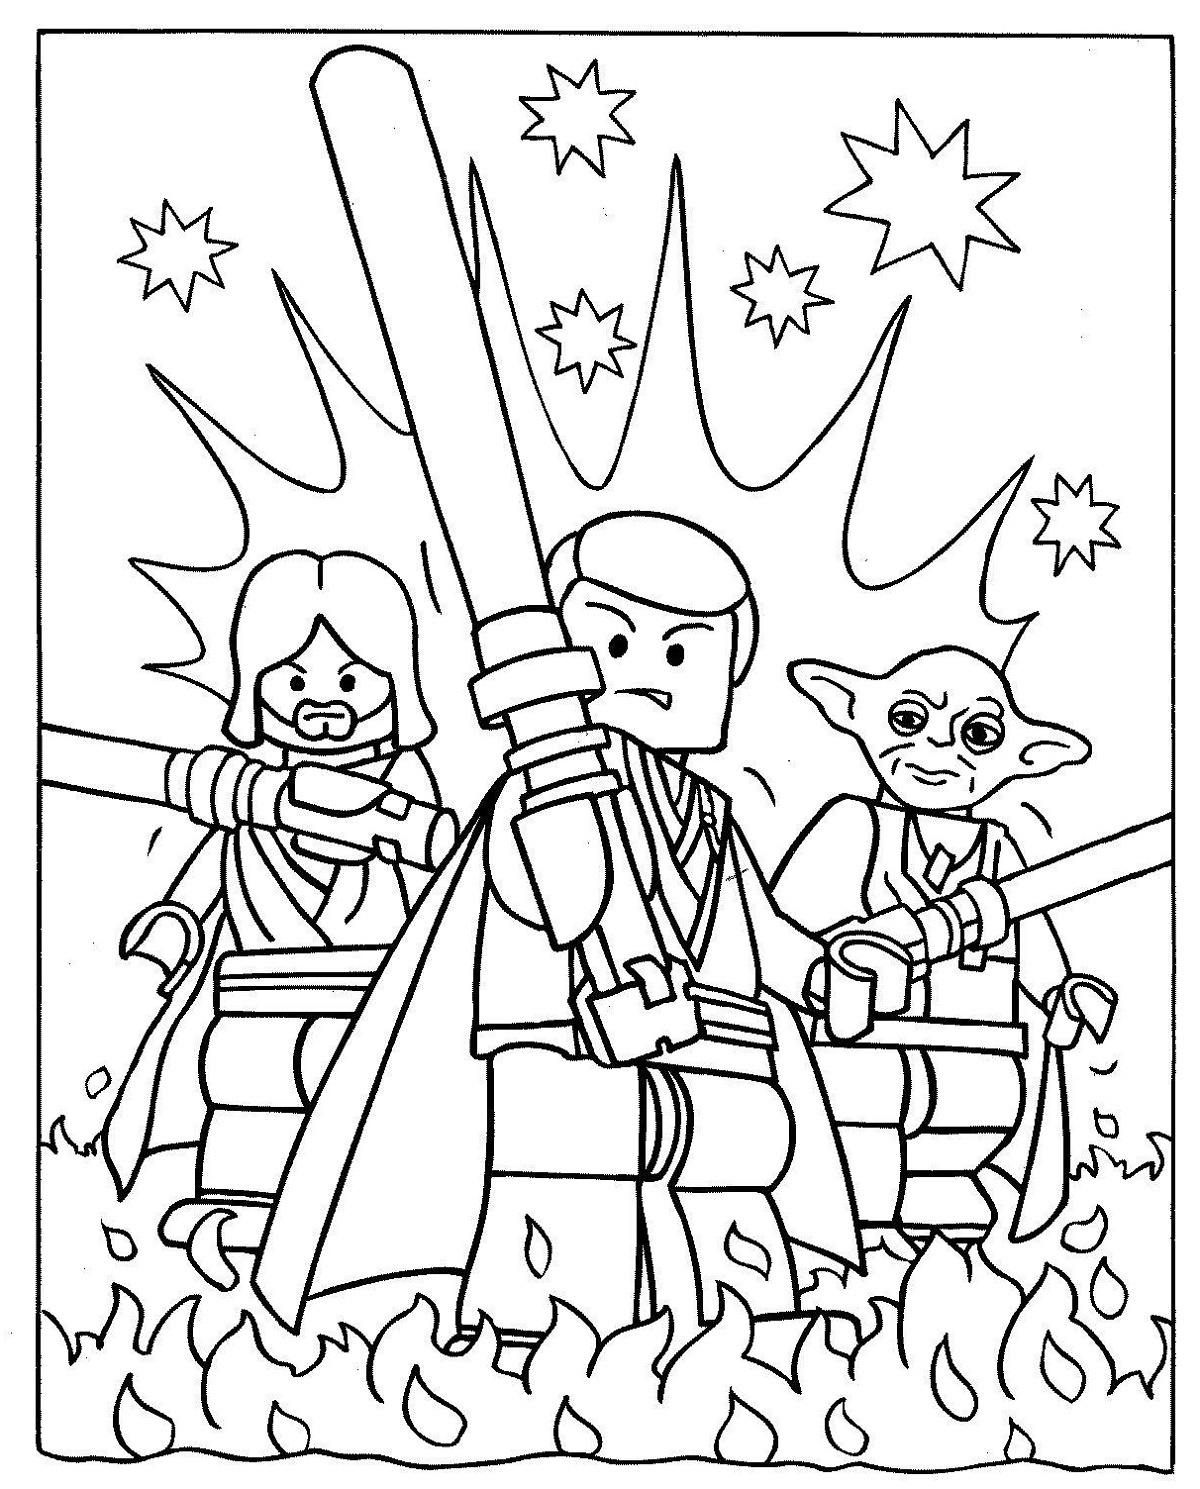 legos star wars coloring pages create your own lego coloring pages for kids star wars legos pages coloring